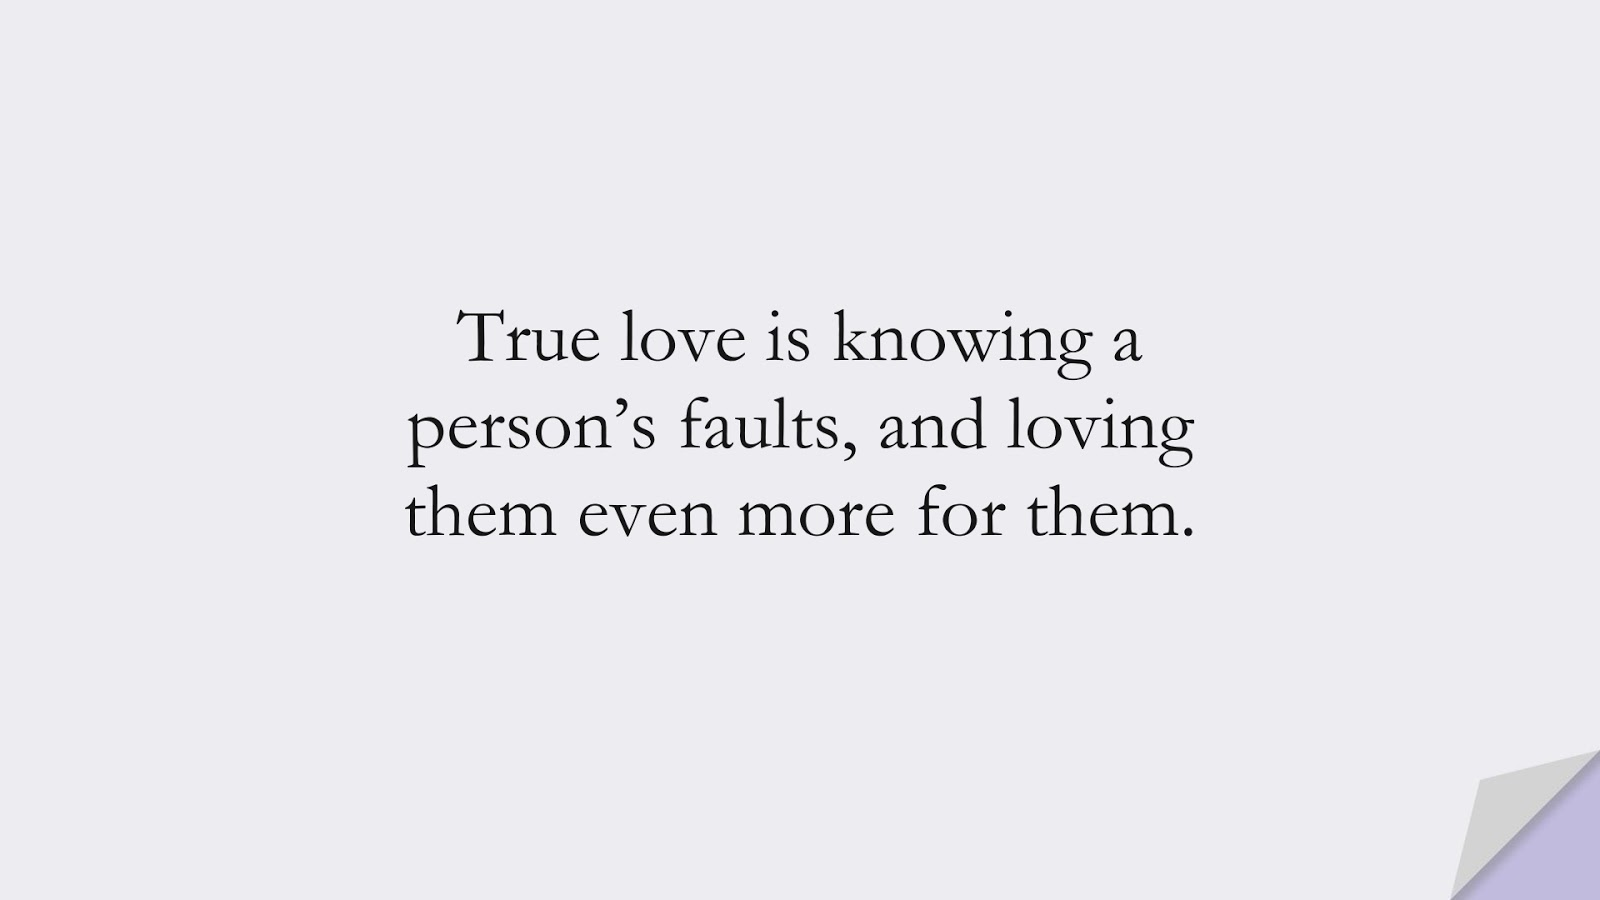 True love is knowing a person's faults, and loving them even more for them.FALSE